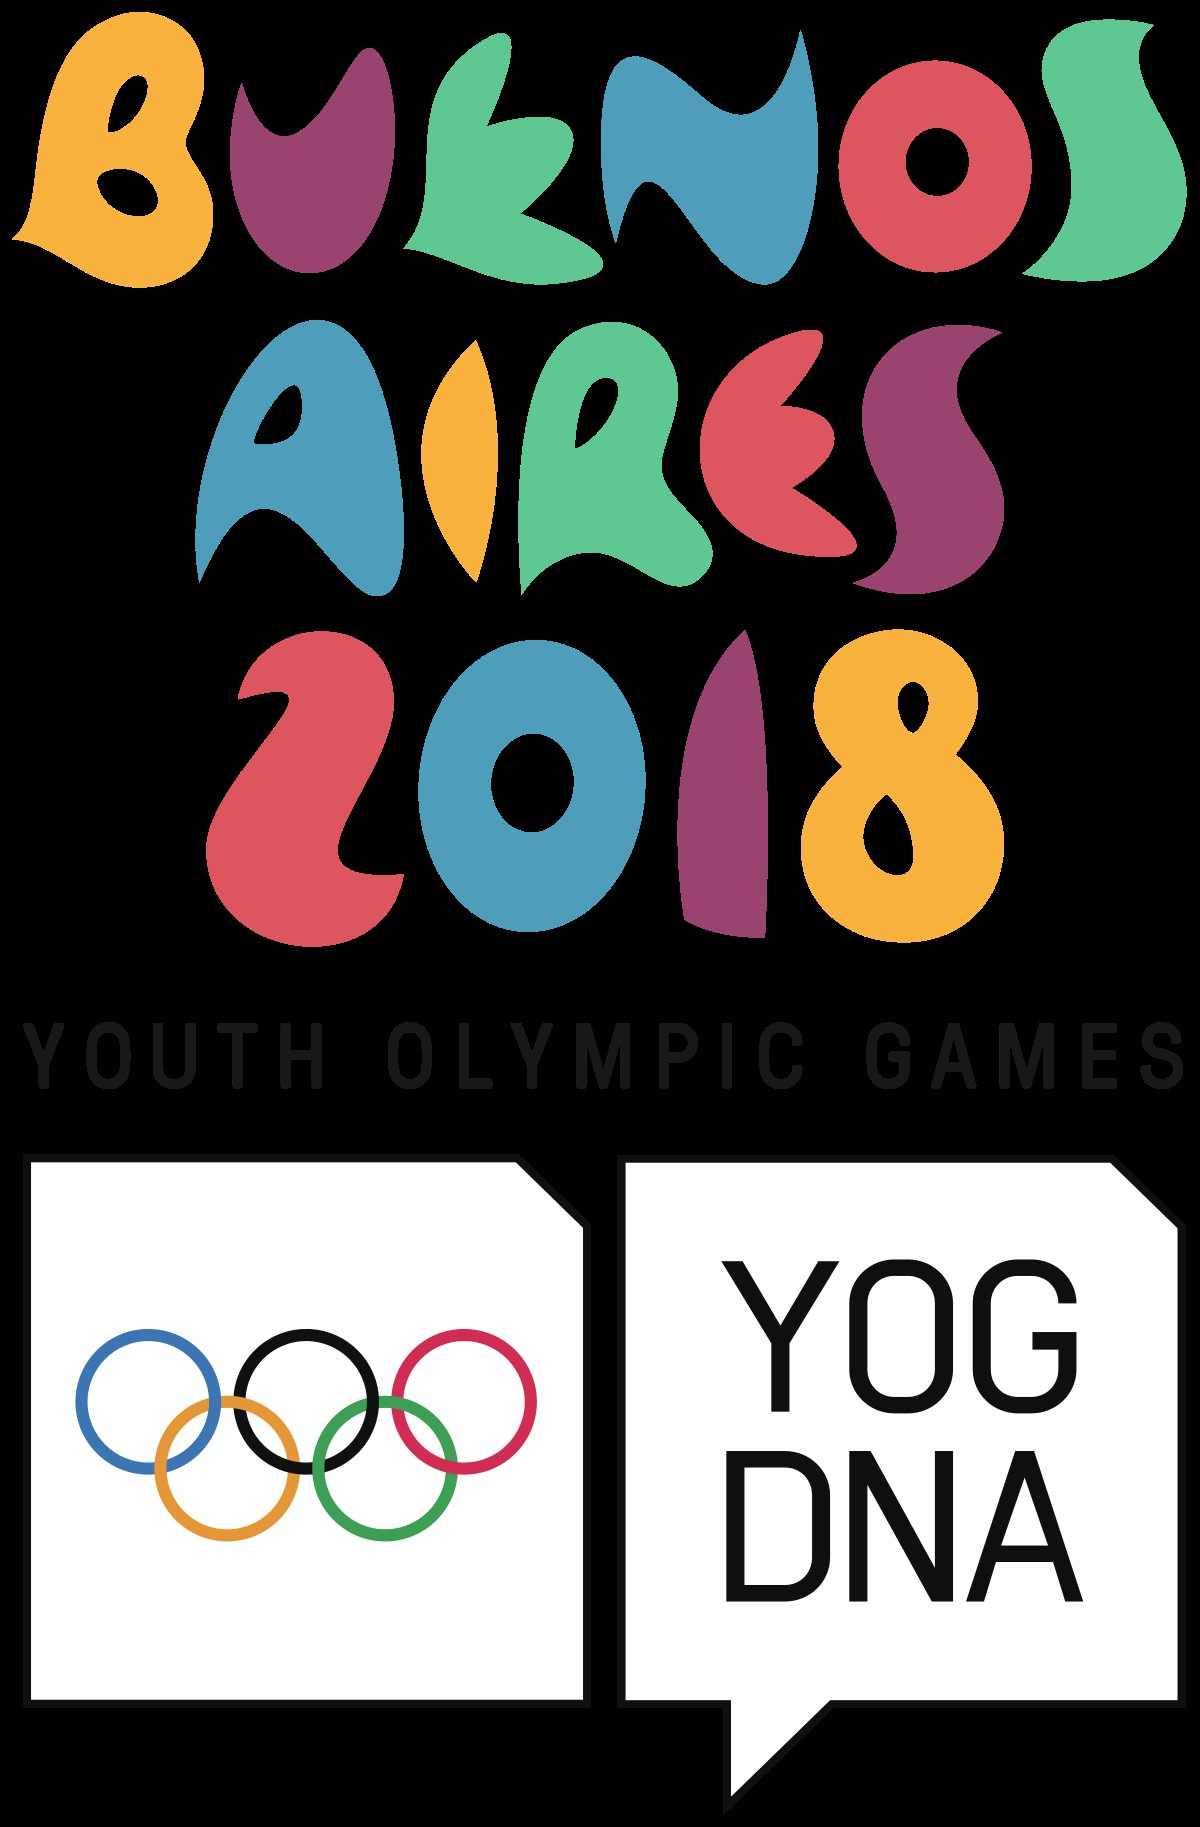 Calendario 2019 Feriados Republica Dominicana Más Reciente 2018 Summer Youth Olympics Of Calendario 2019 Feriados Republica Dominicana Más Reciente Calendario A±o 2019